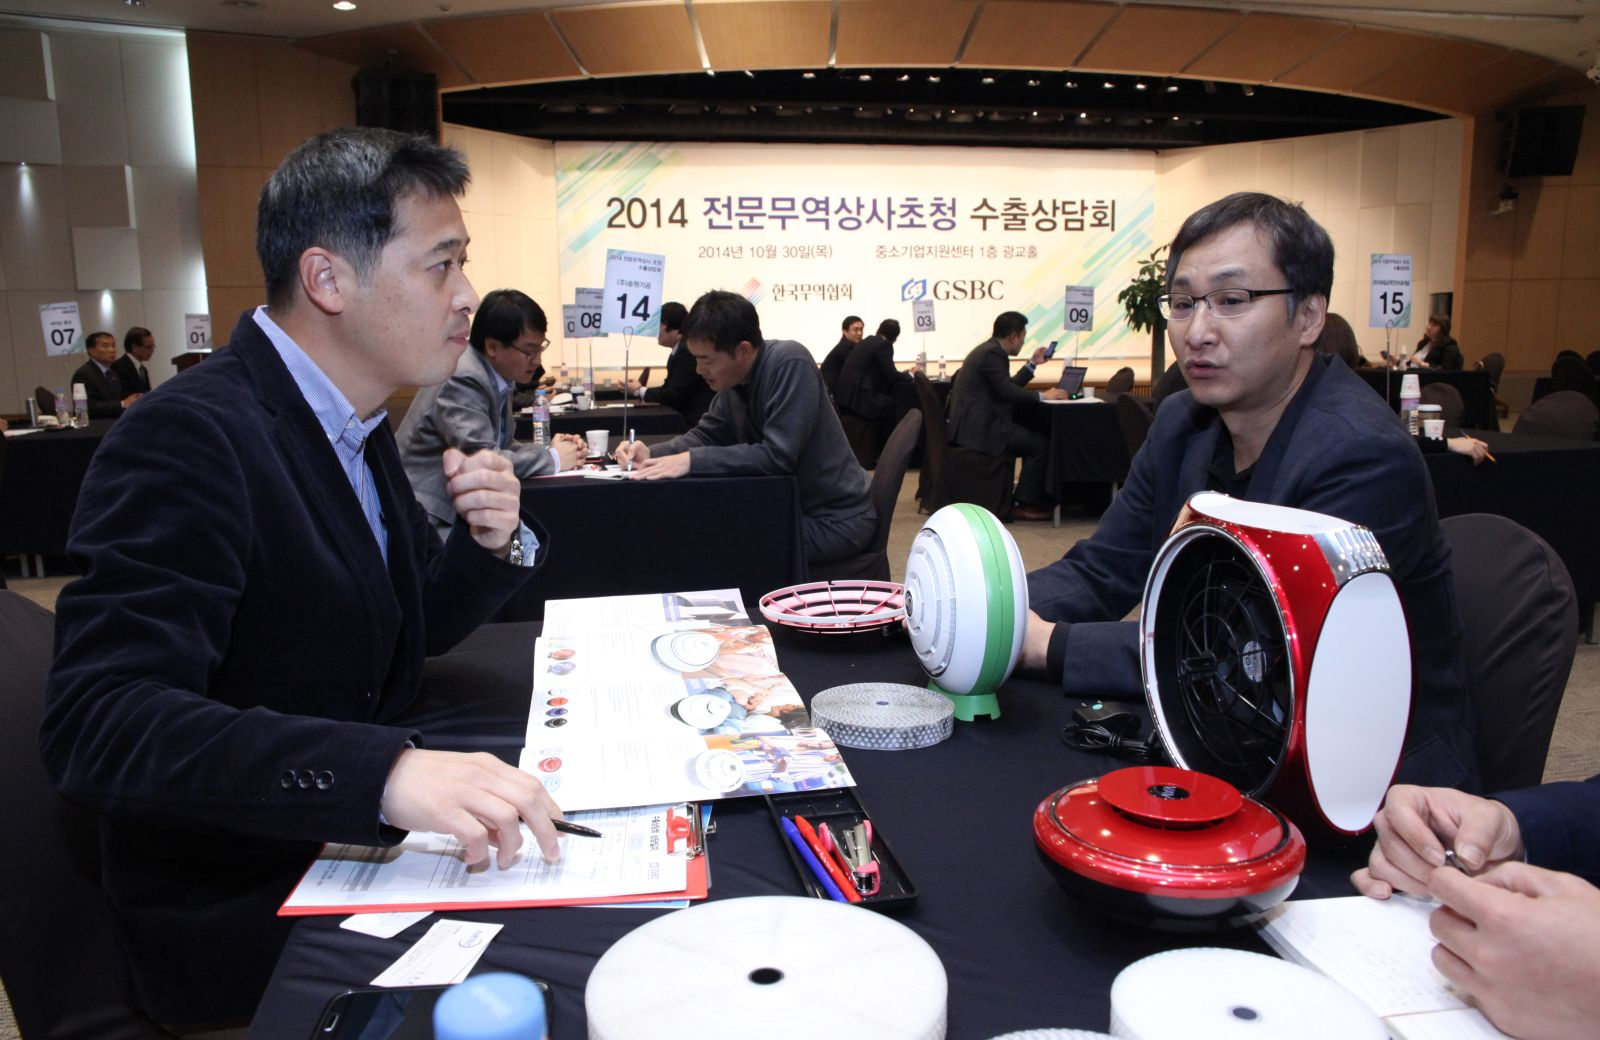 Invitation of Specialized Trading Companies for Export Business Talk 2